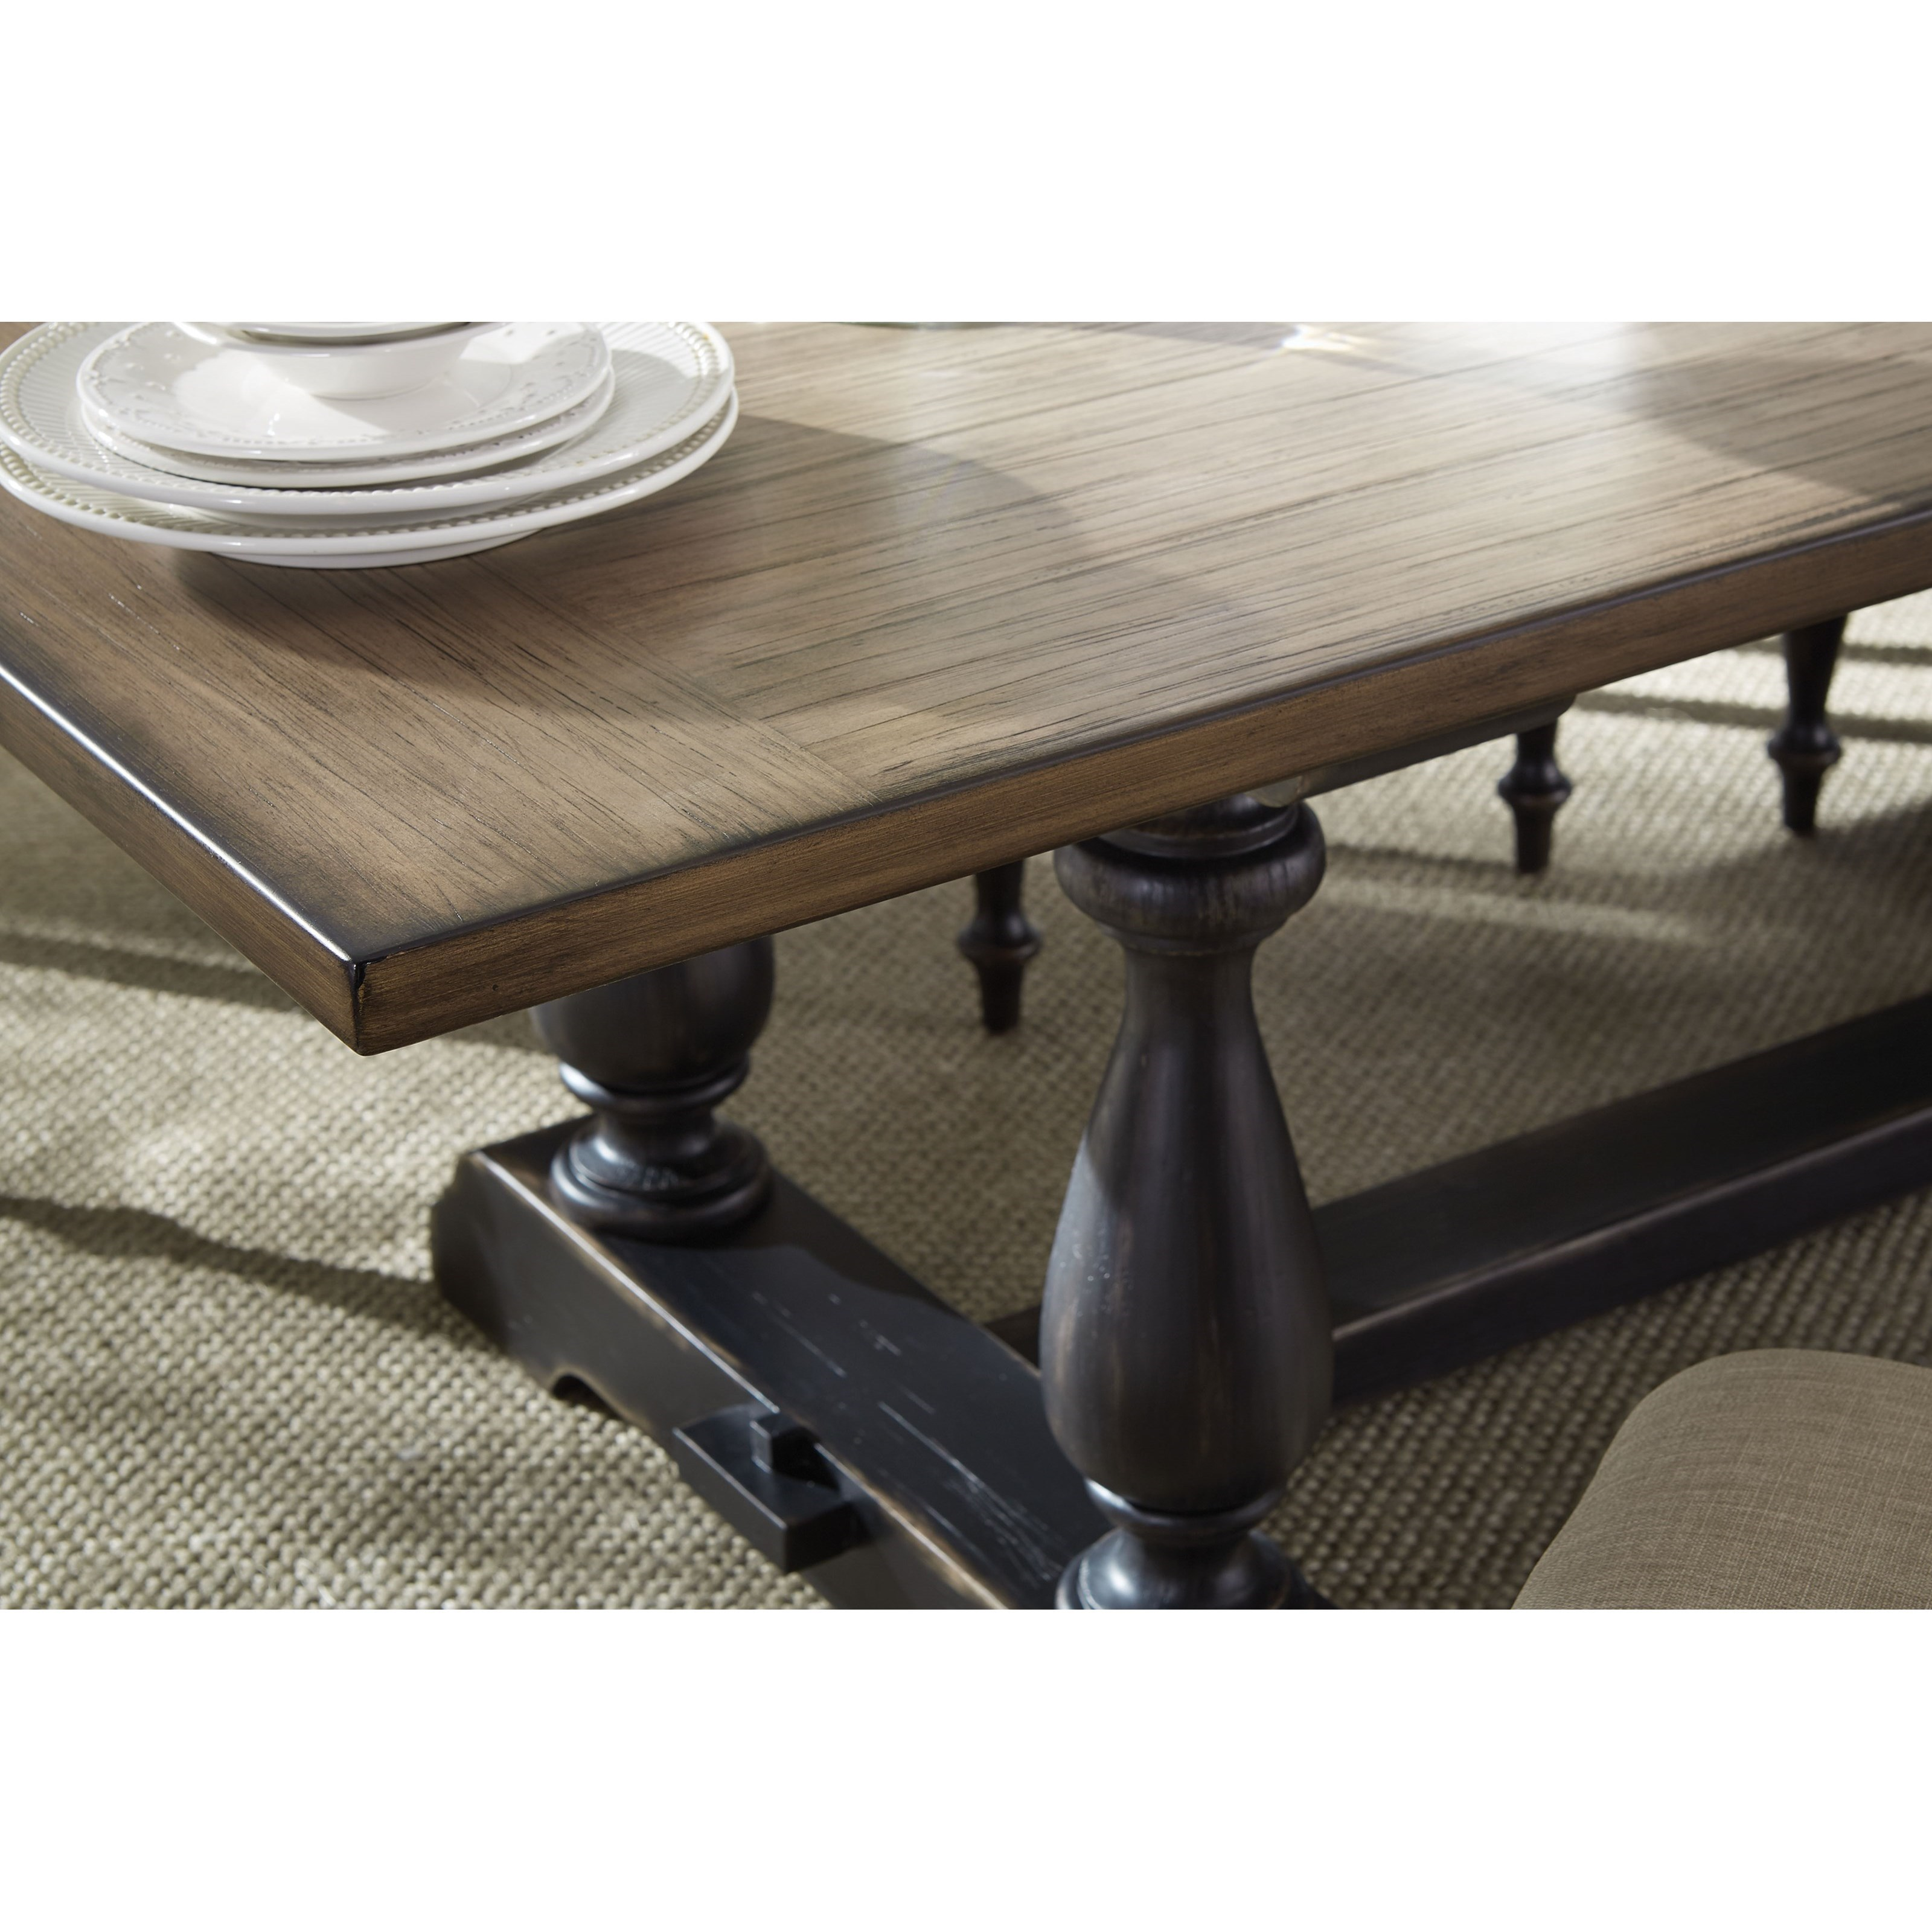 two tone dining table with trestle base by standard furniture wolf and gardiner wolf furniture. Black Bedroom Furniture Sets. Home Design Ideas